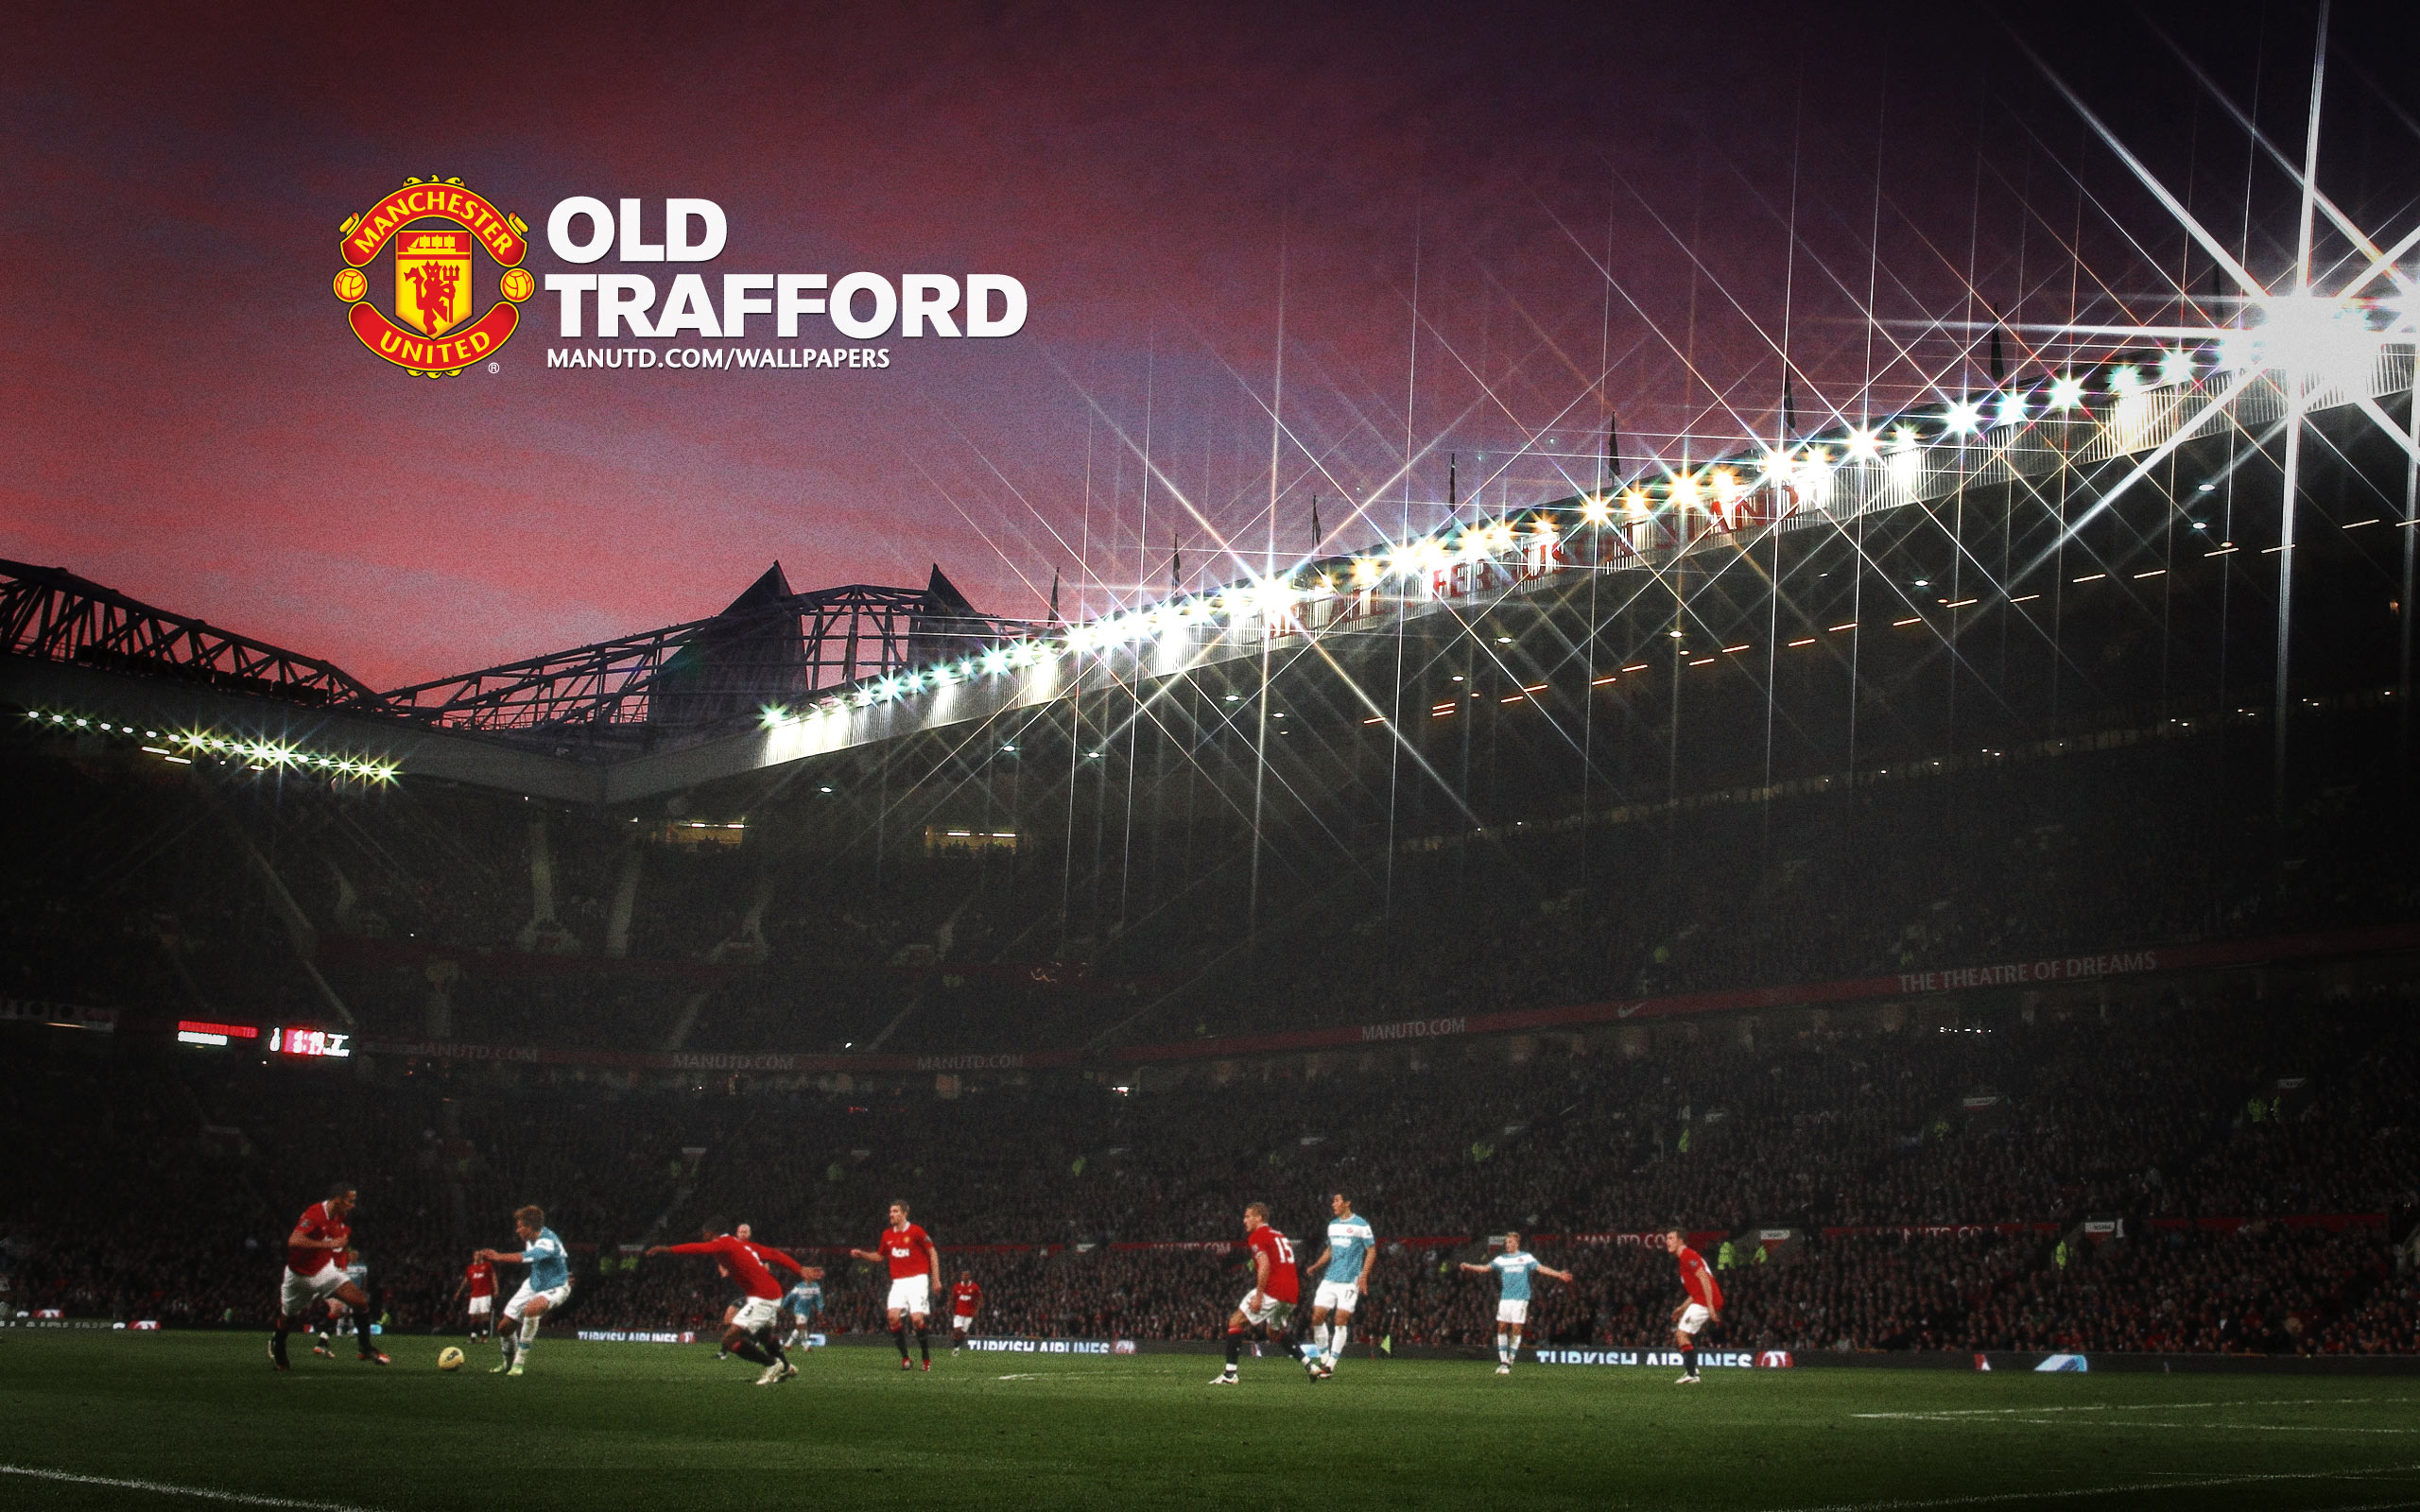 50 Old Trafford Wallpapers Hd On Wallpapersafari